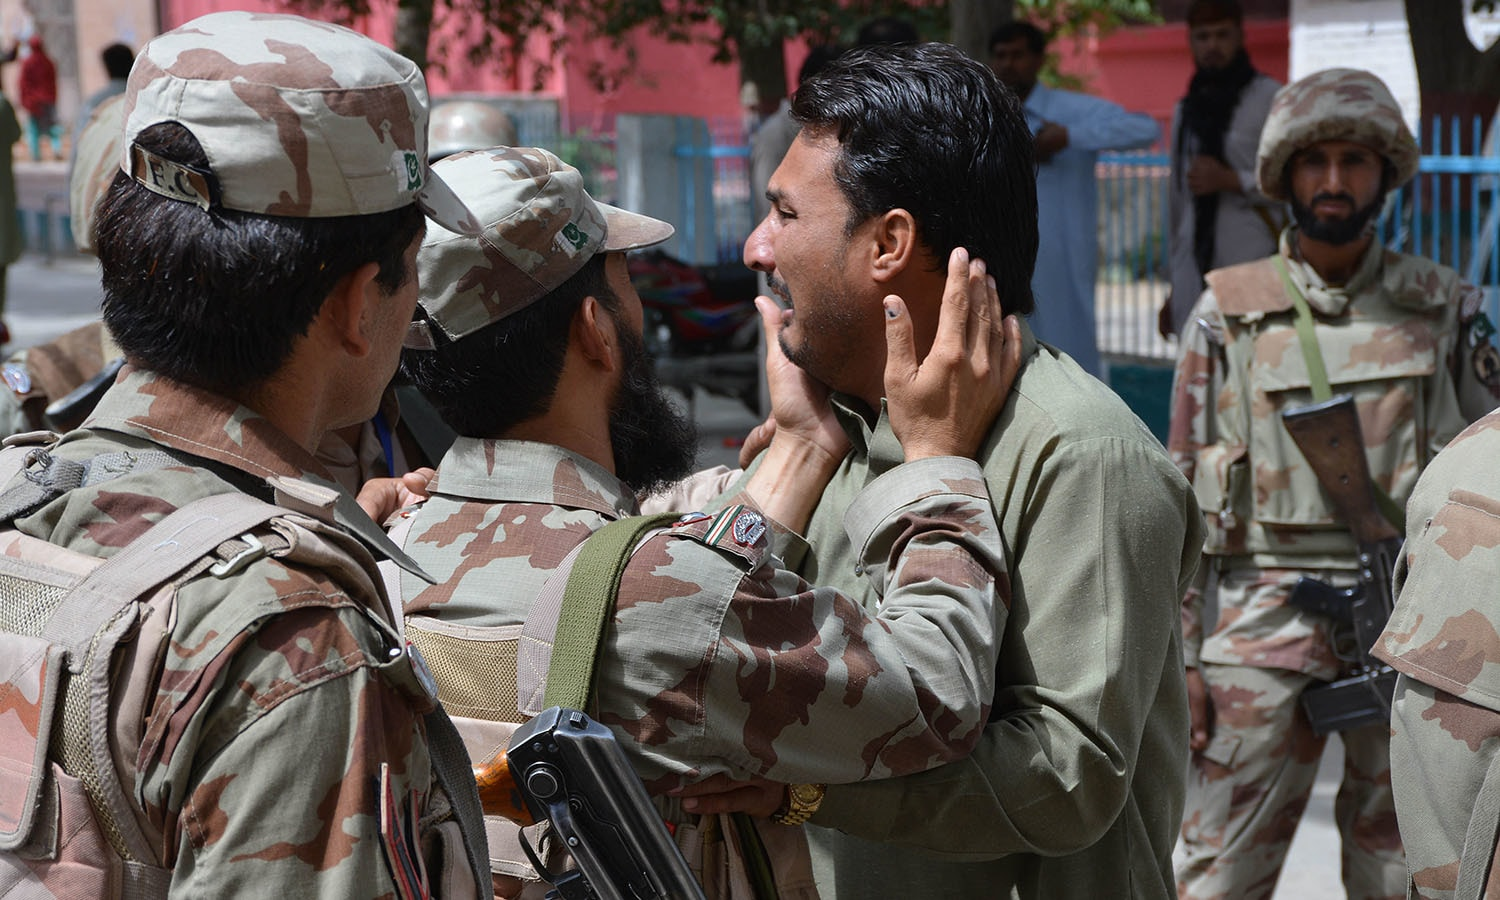 A soldier comforts a mourner after the killing of a victim in a bomb explosion at a government hospital premises in Quetta on August 8, 2016.—AFP